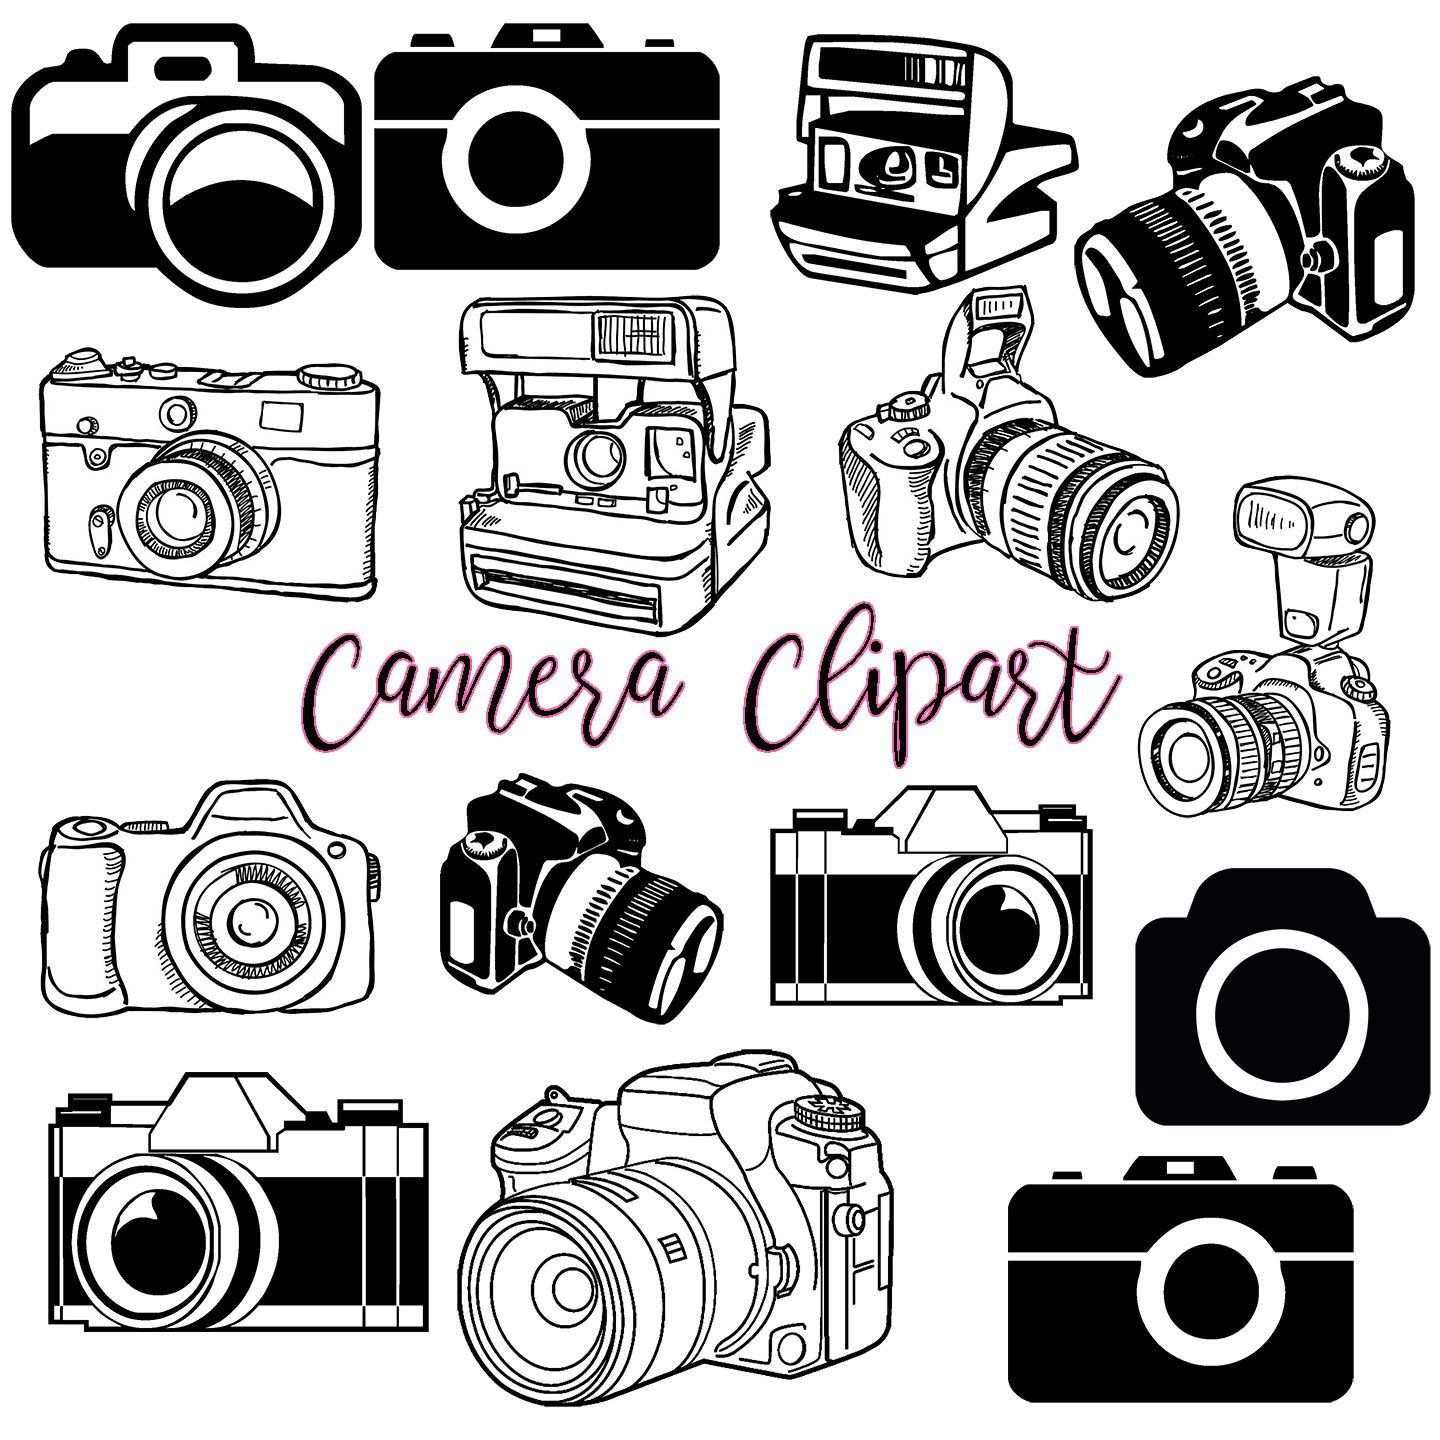 Camera Clipart #1, Photography Clip Art Logo Elements.